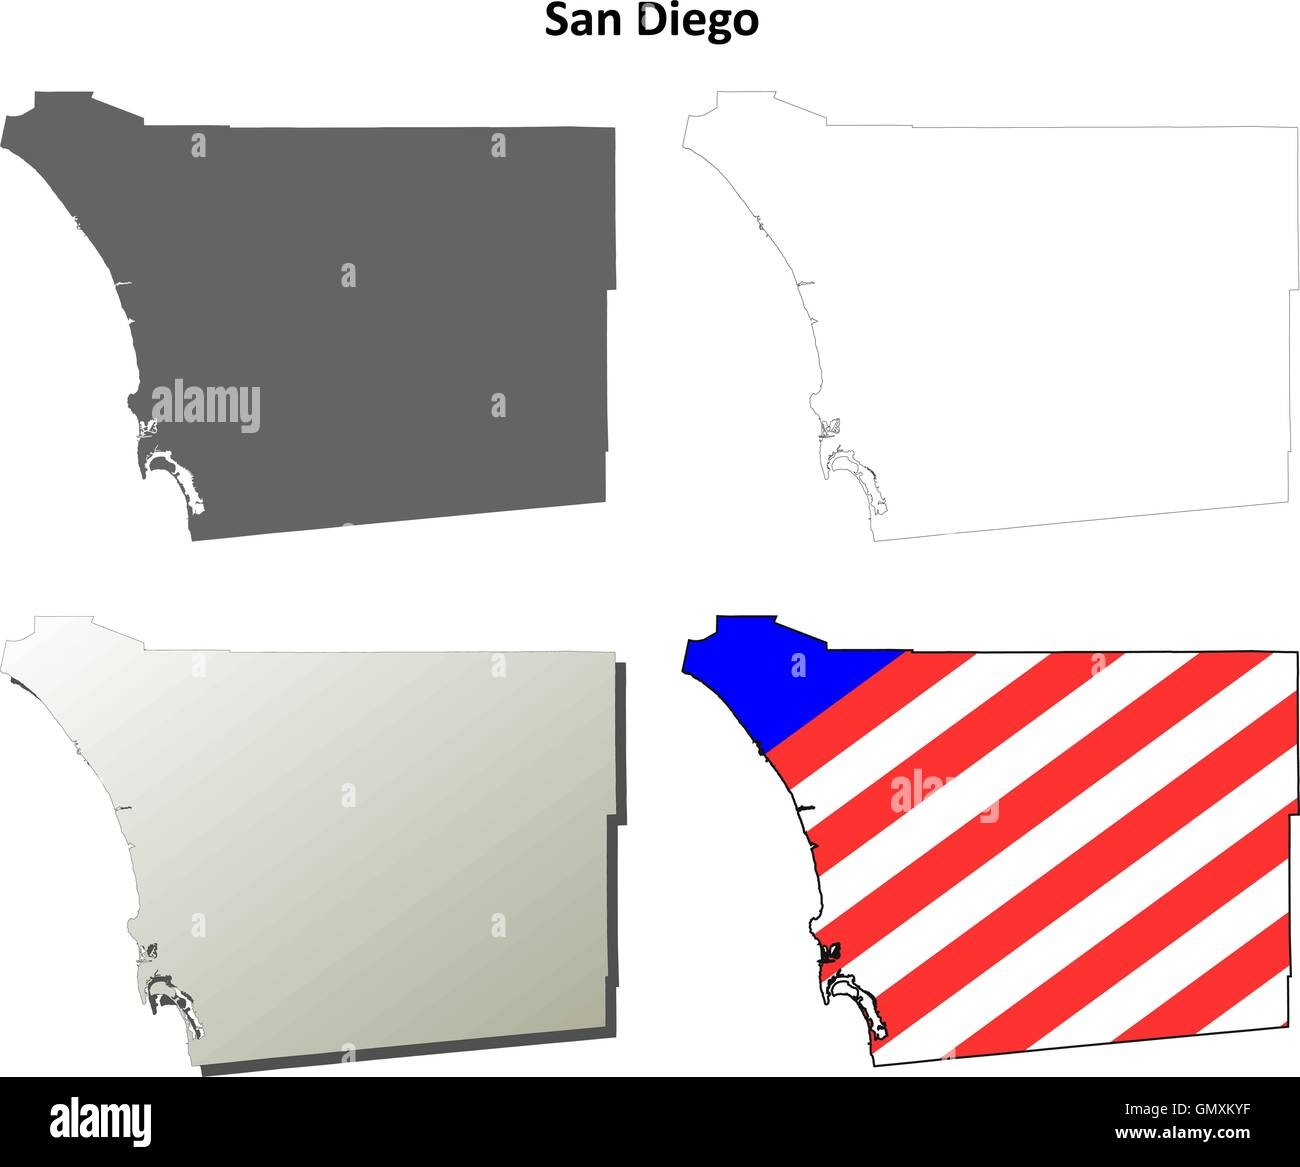 California Map San Diego County.San Diego County California Outline Map Set Stock Vector Art